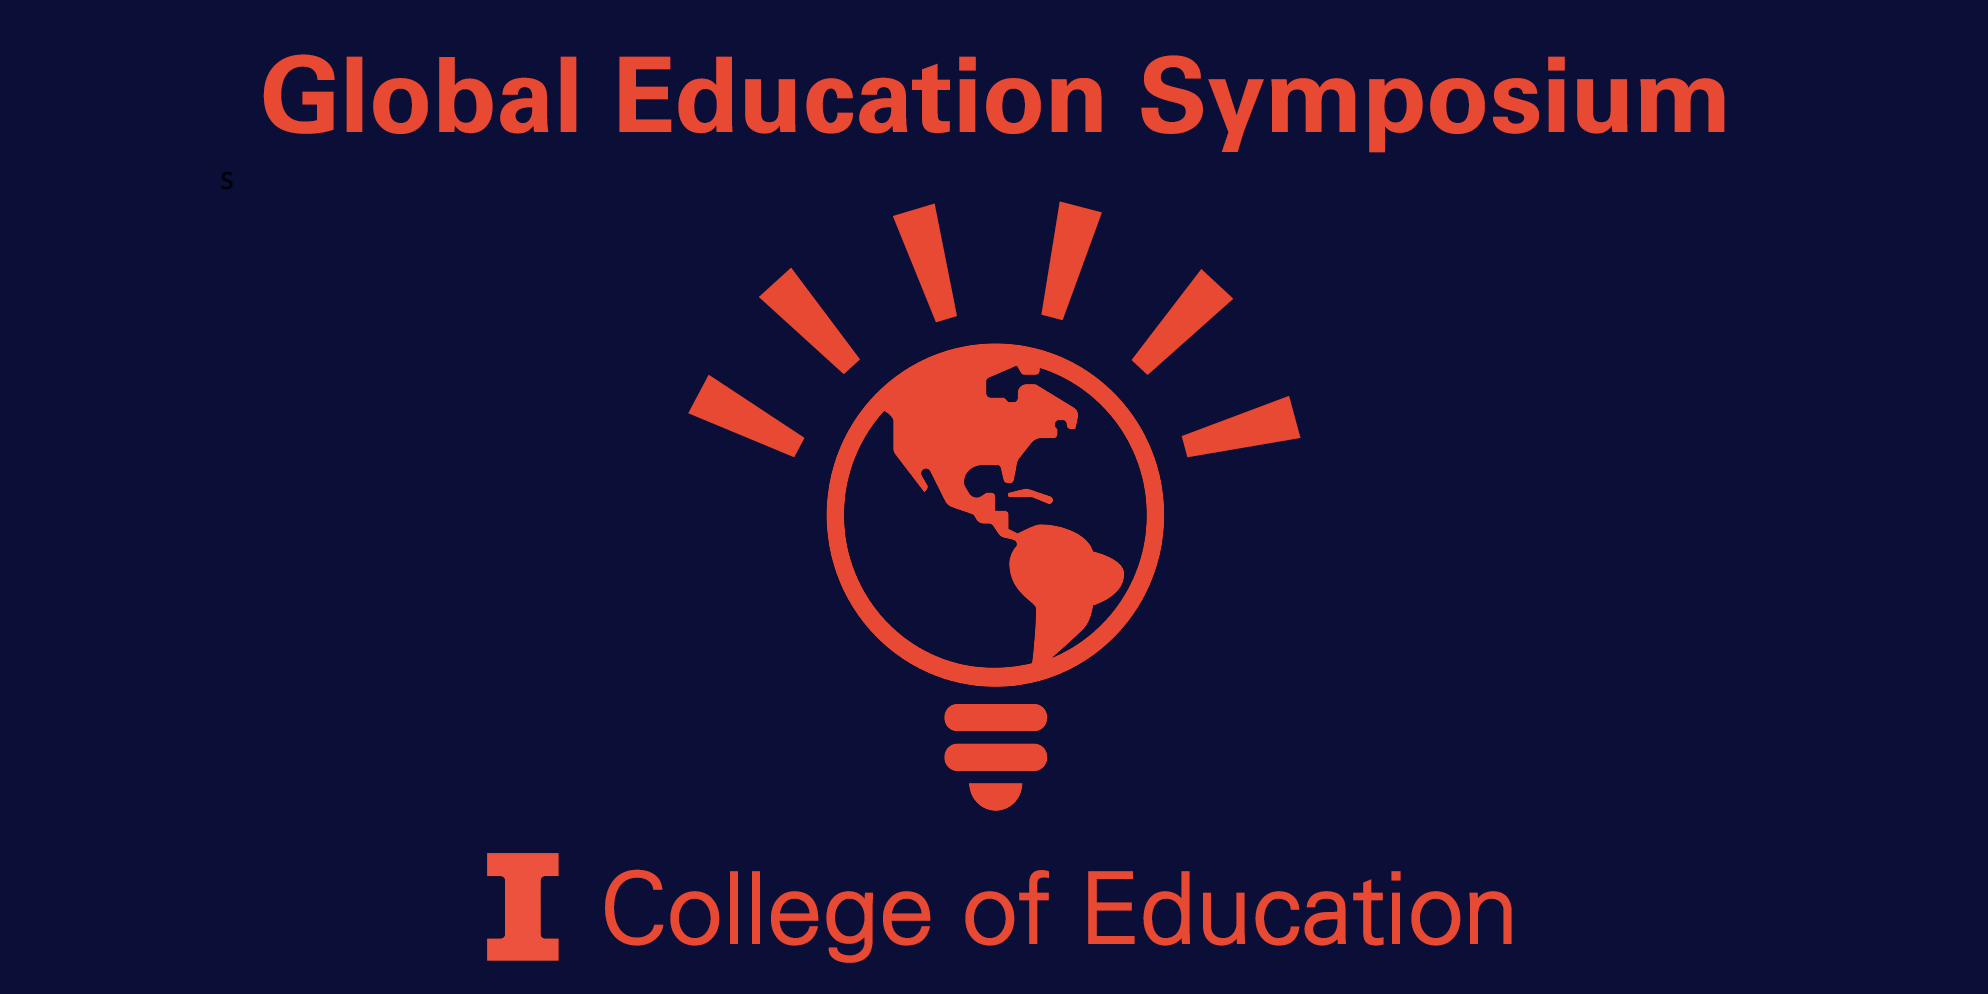 Global Education Symposium